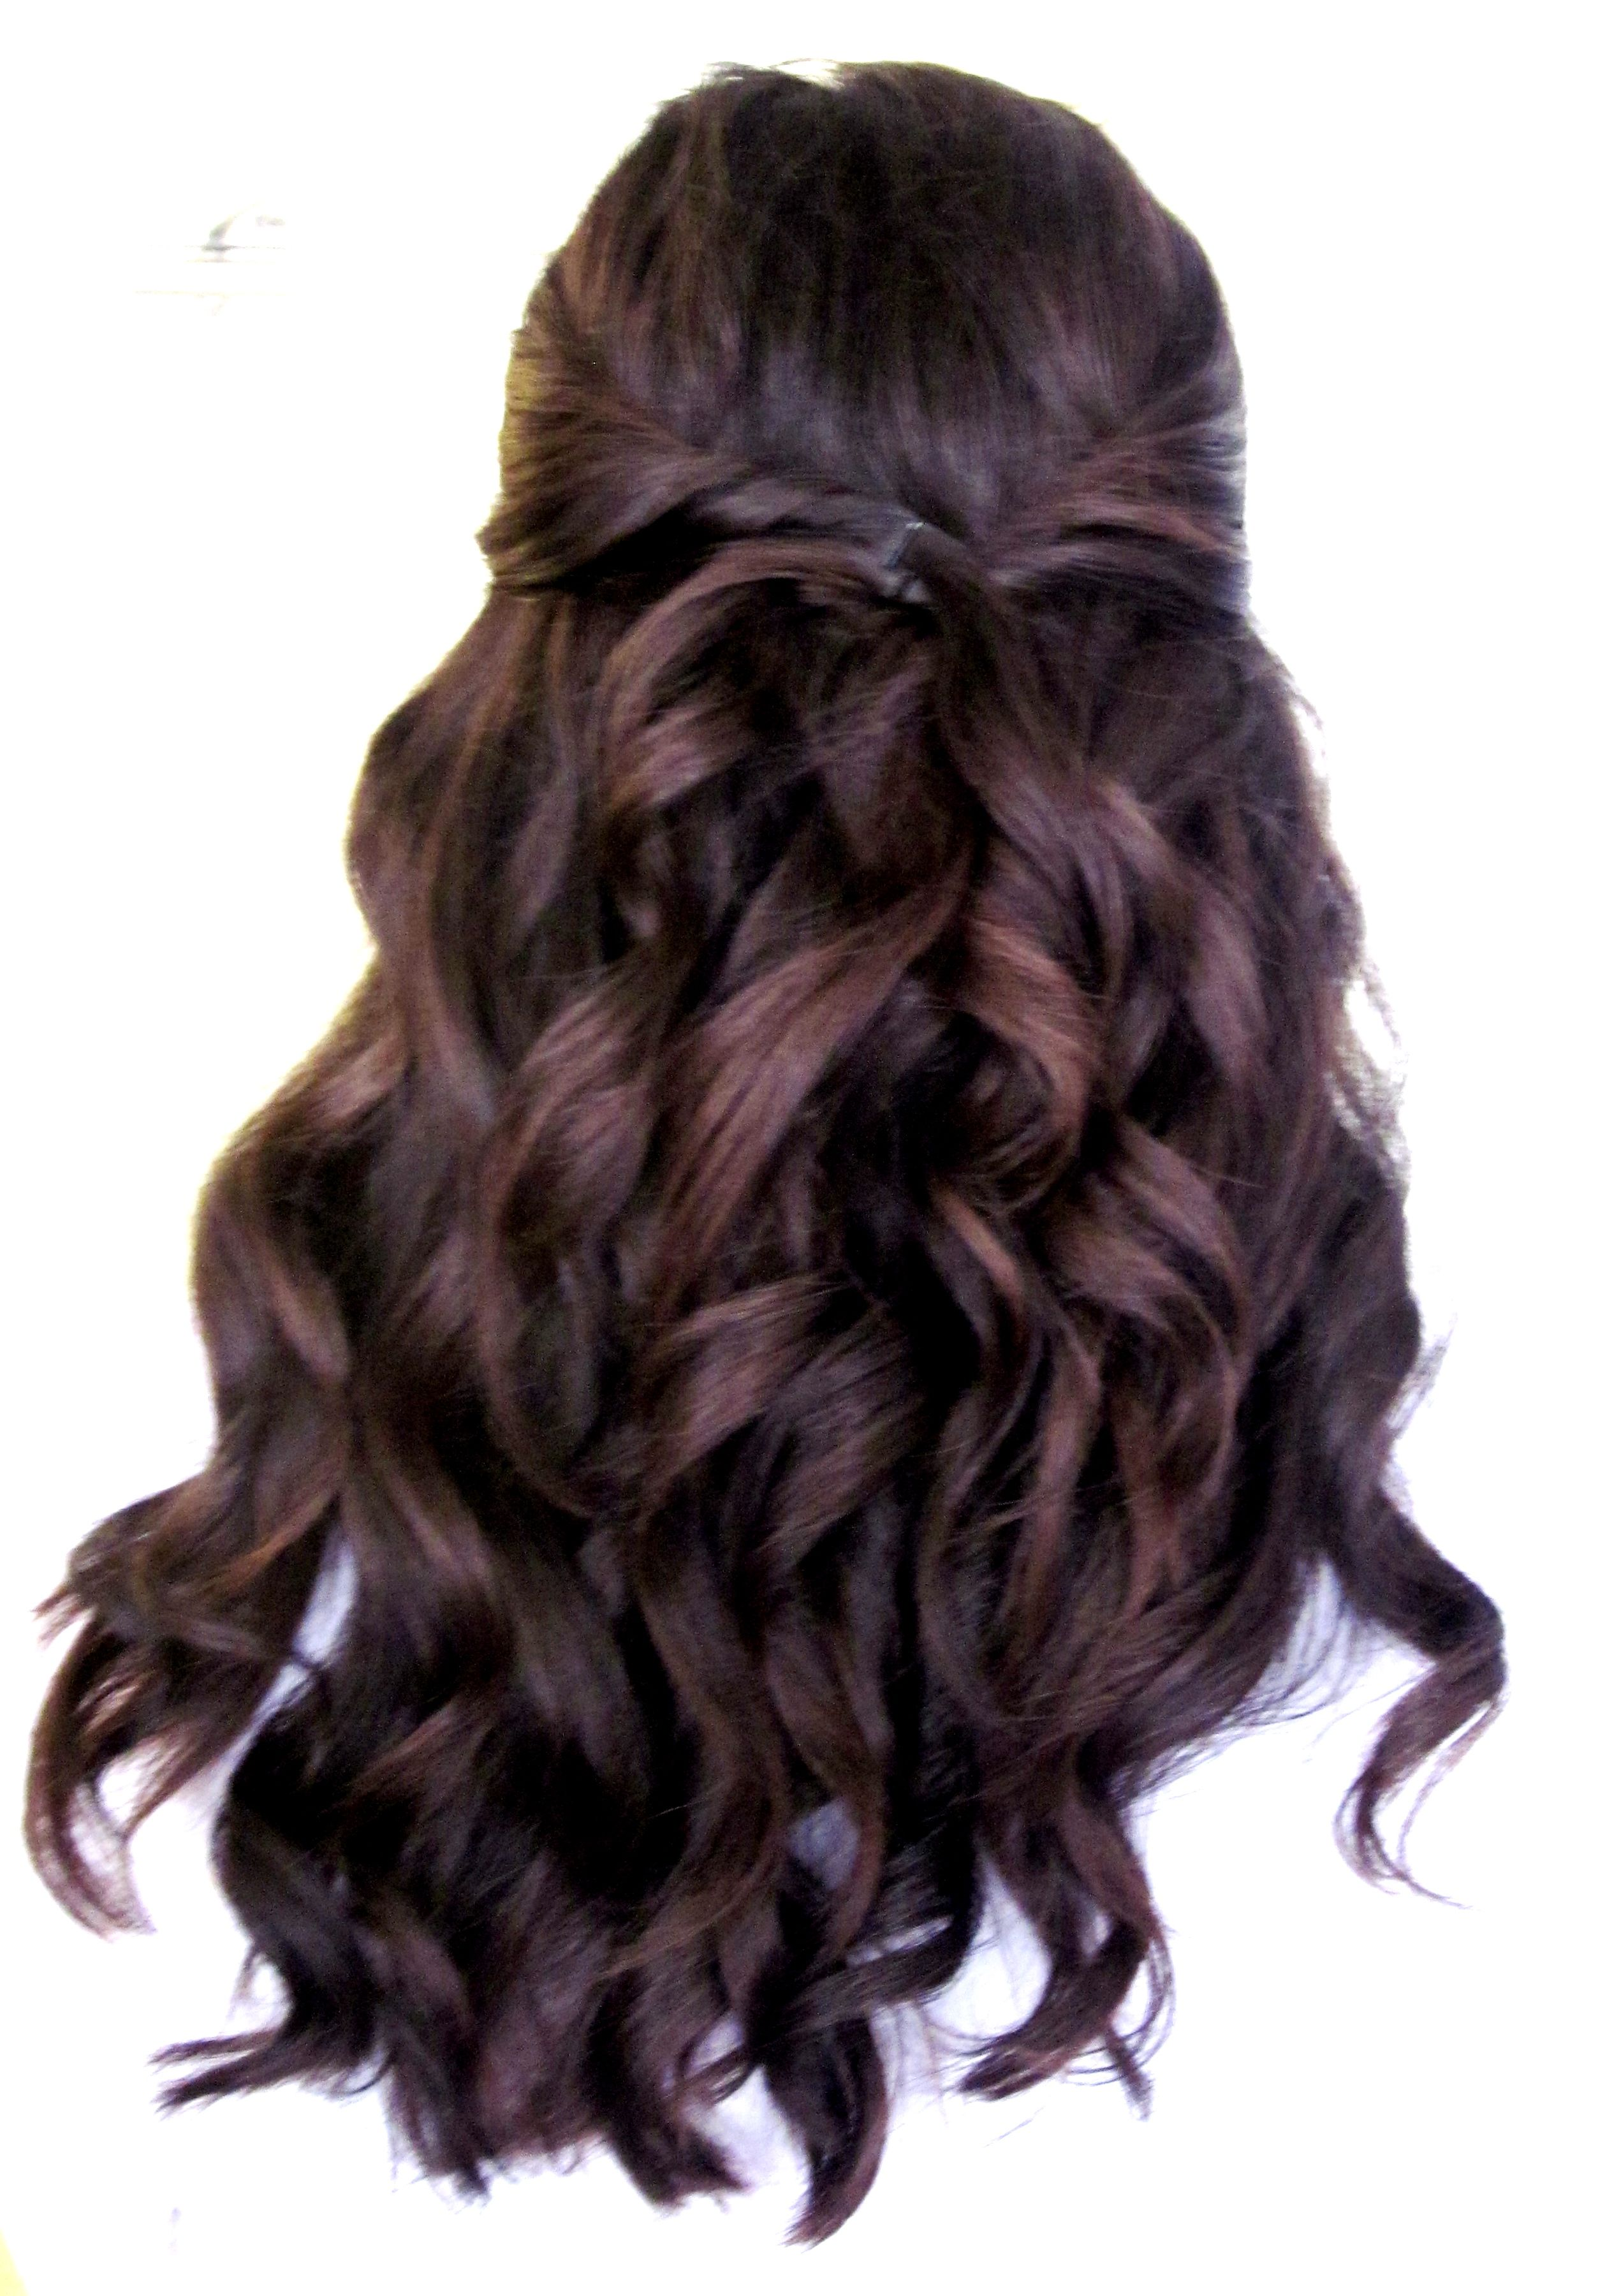 loose curls, a few pinned back one of my favorite hair